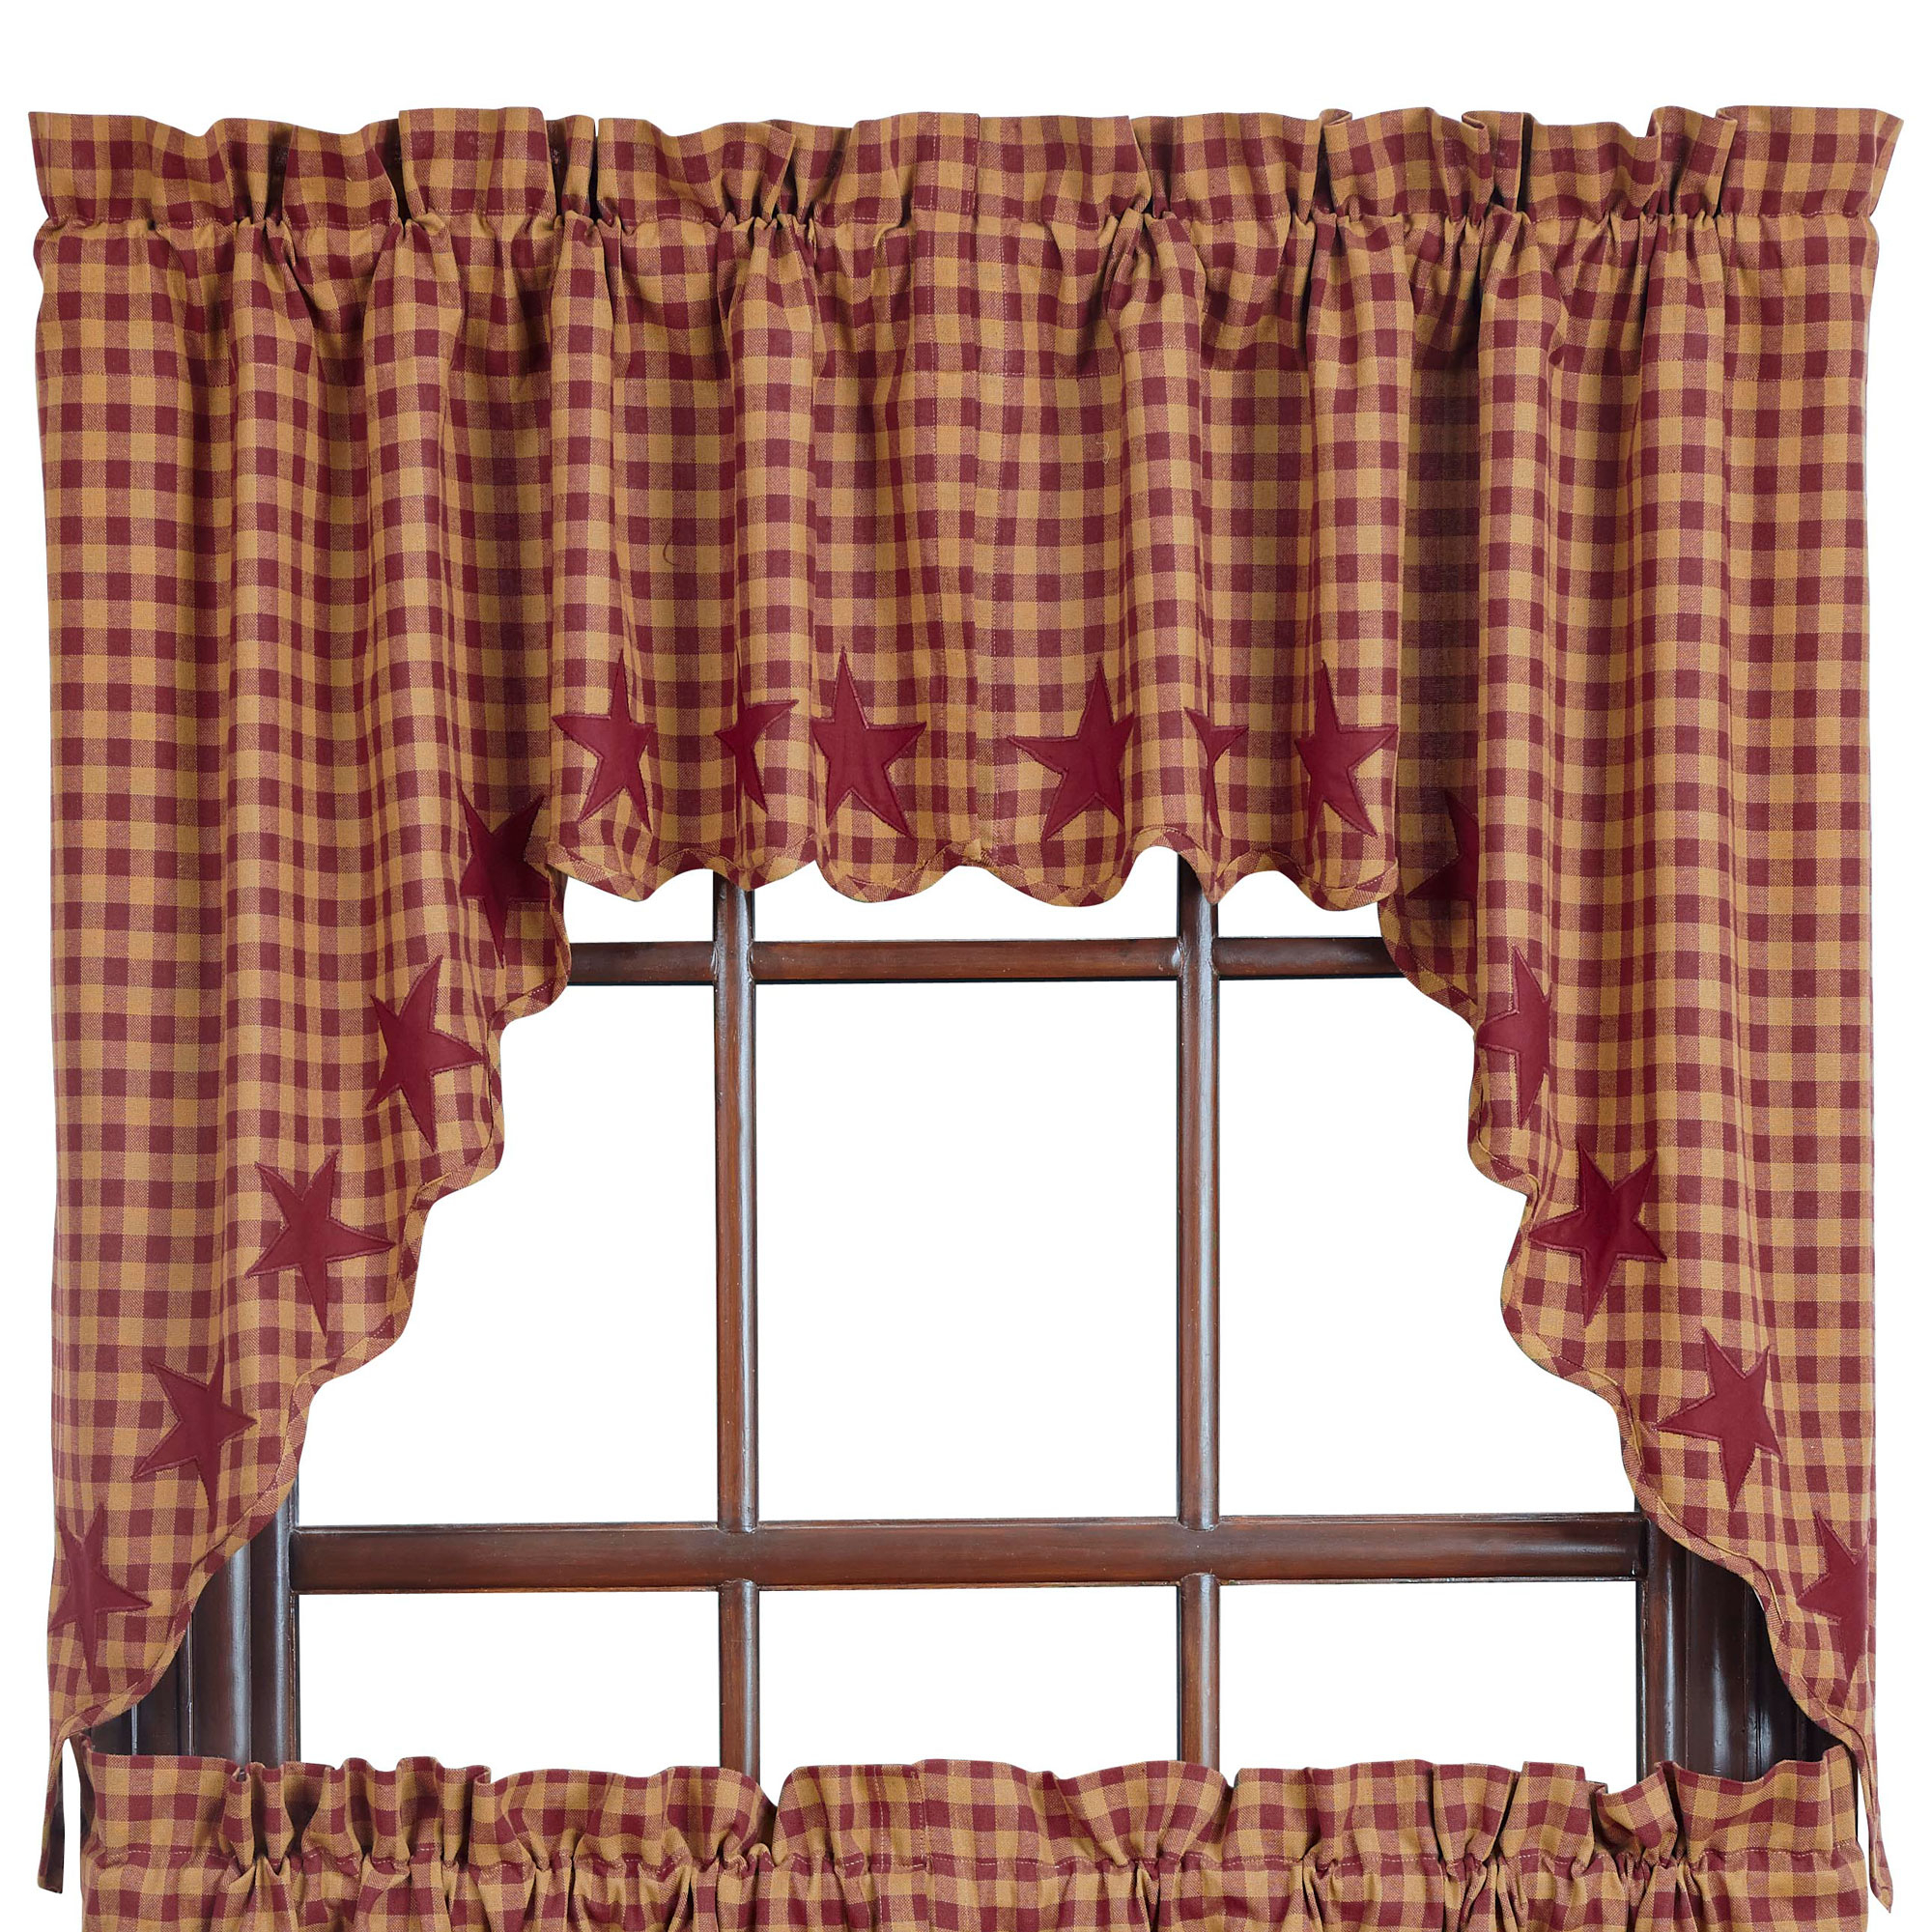 Well Liked Check Scalloped Swag Sets Within Burgundy Star Scalloped Swag Set Of 2 36x36x (View 6 of 20)